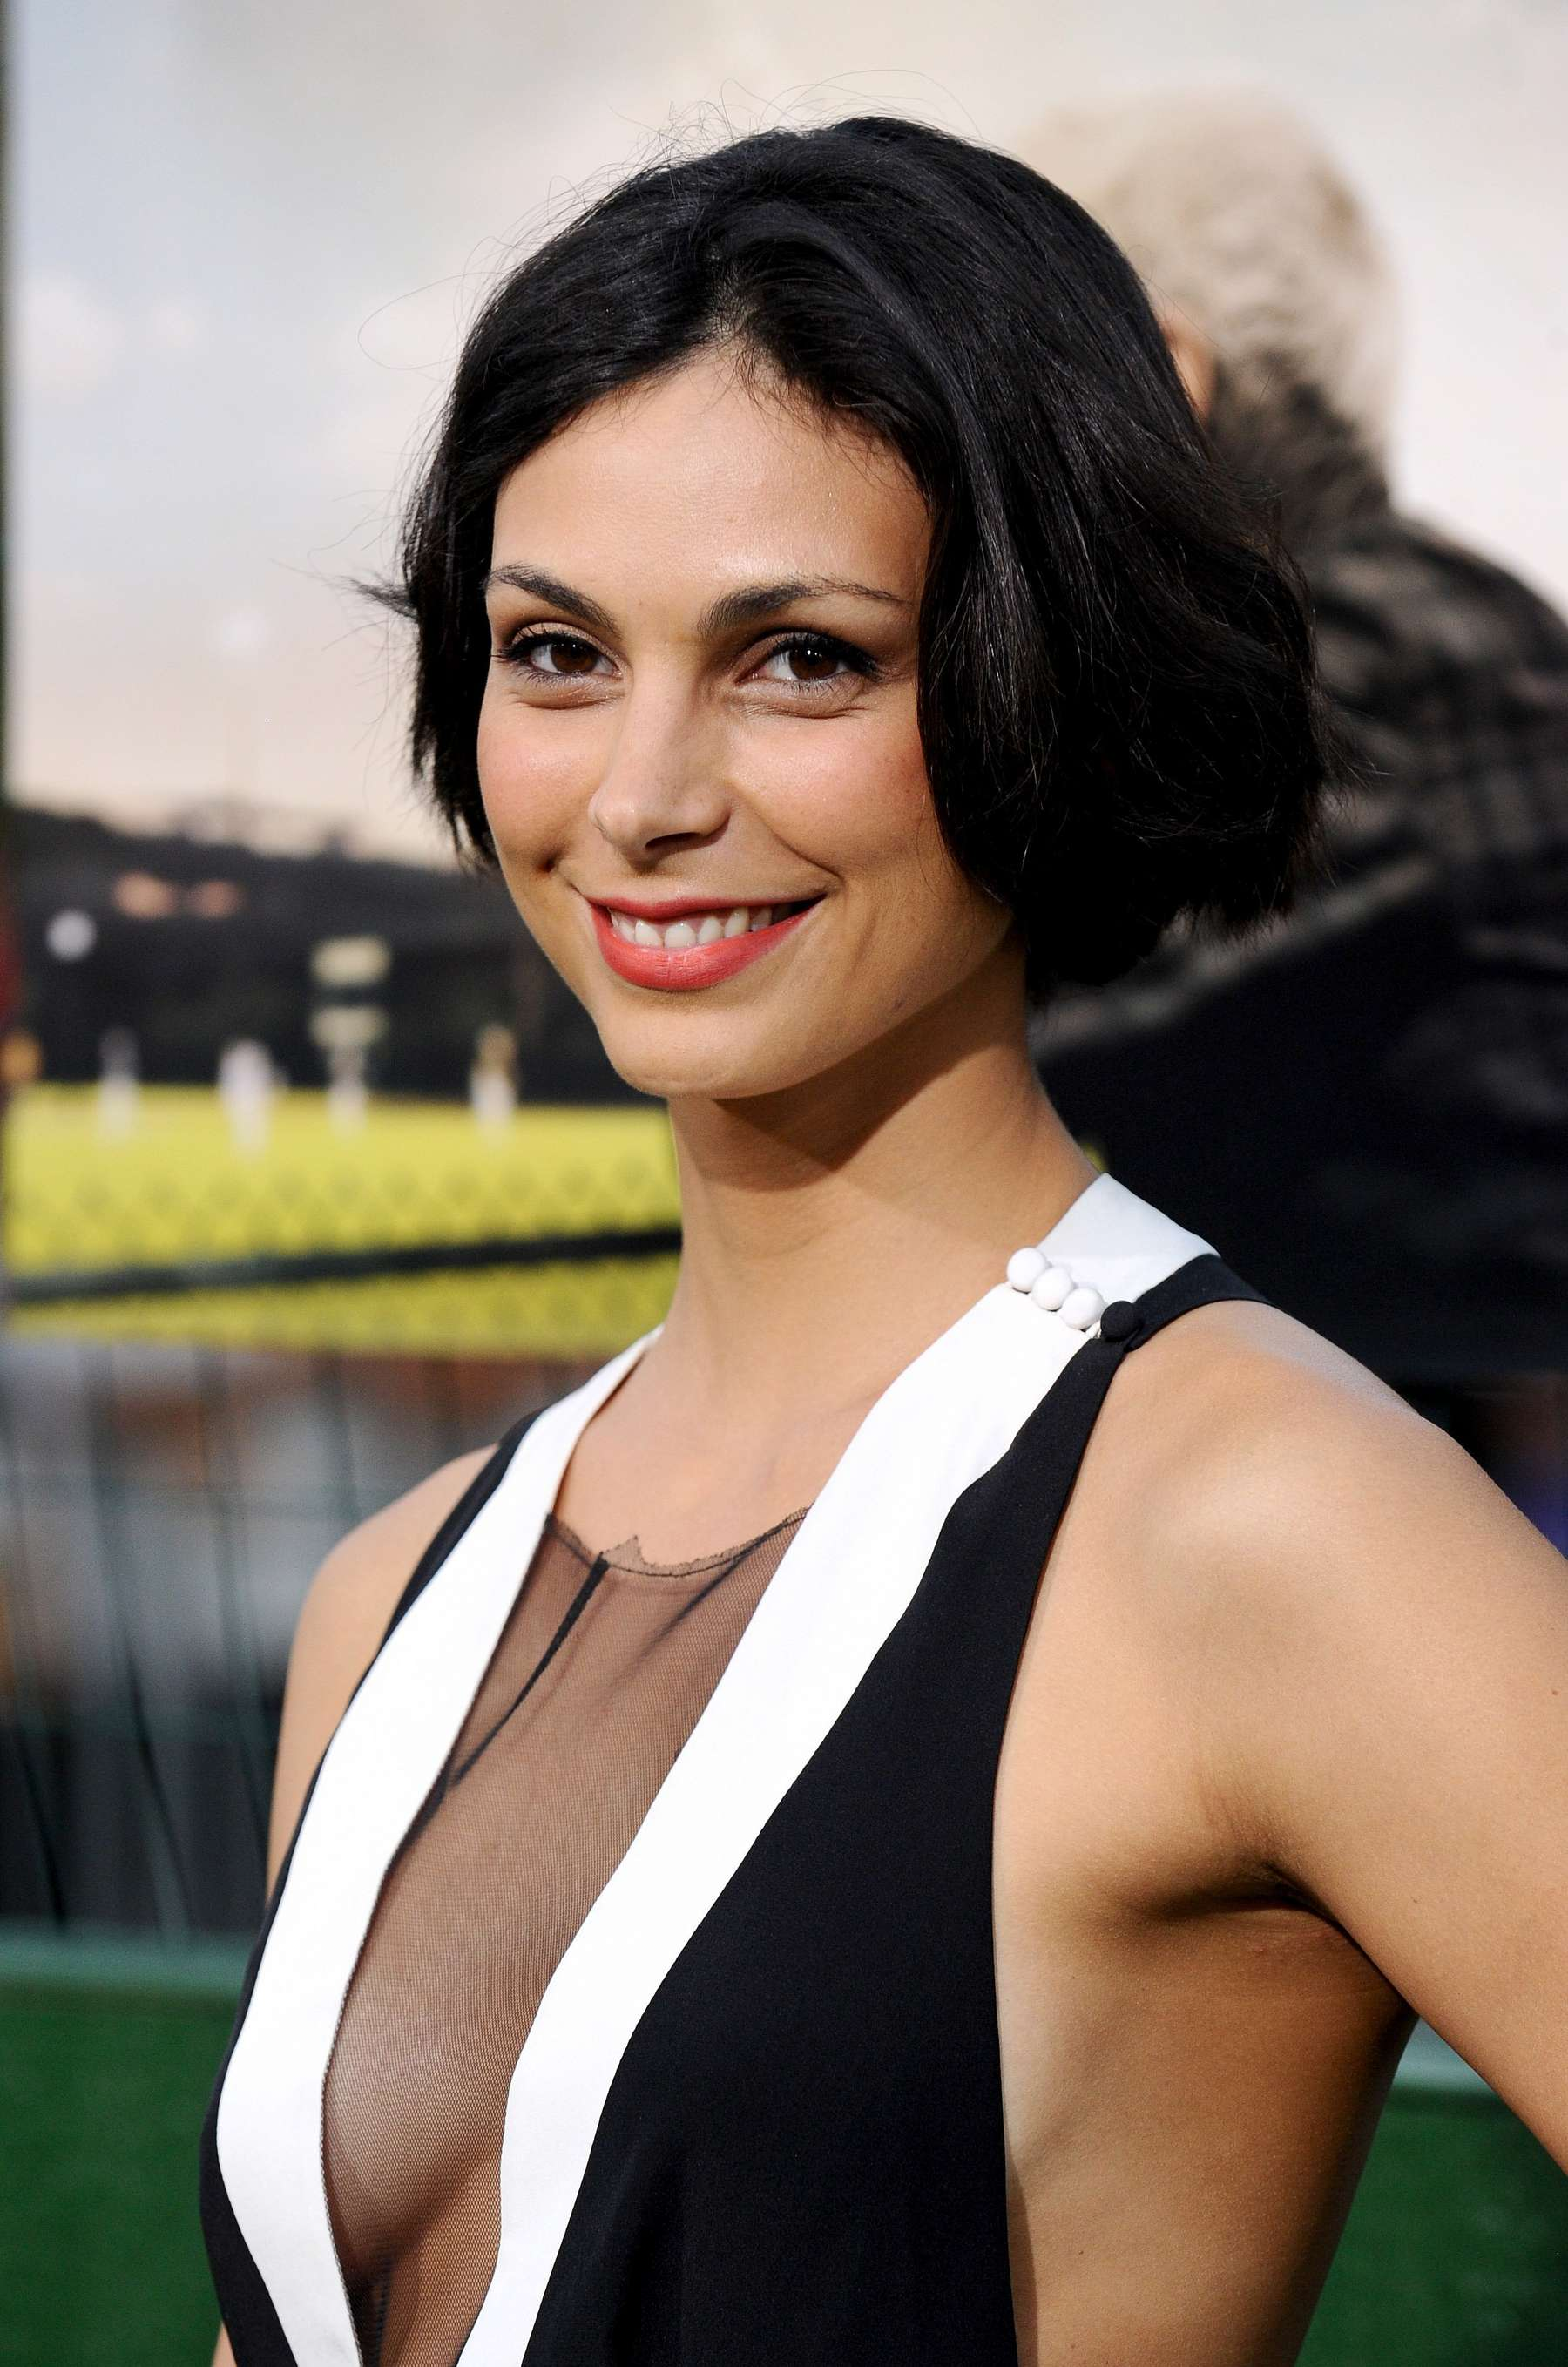 Cleavage Morena Baccarin nude photos 2019